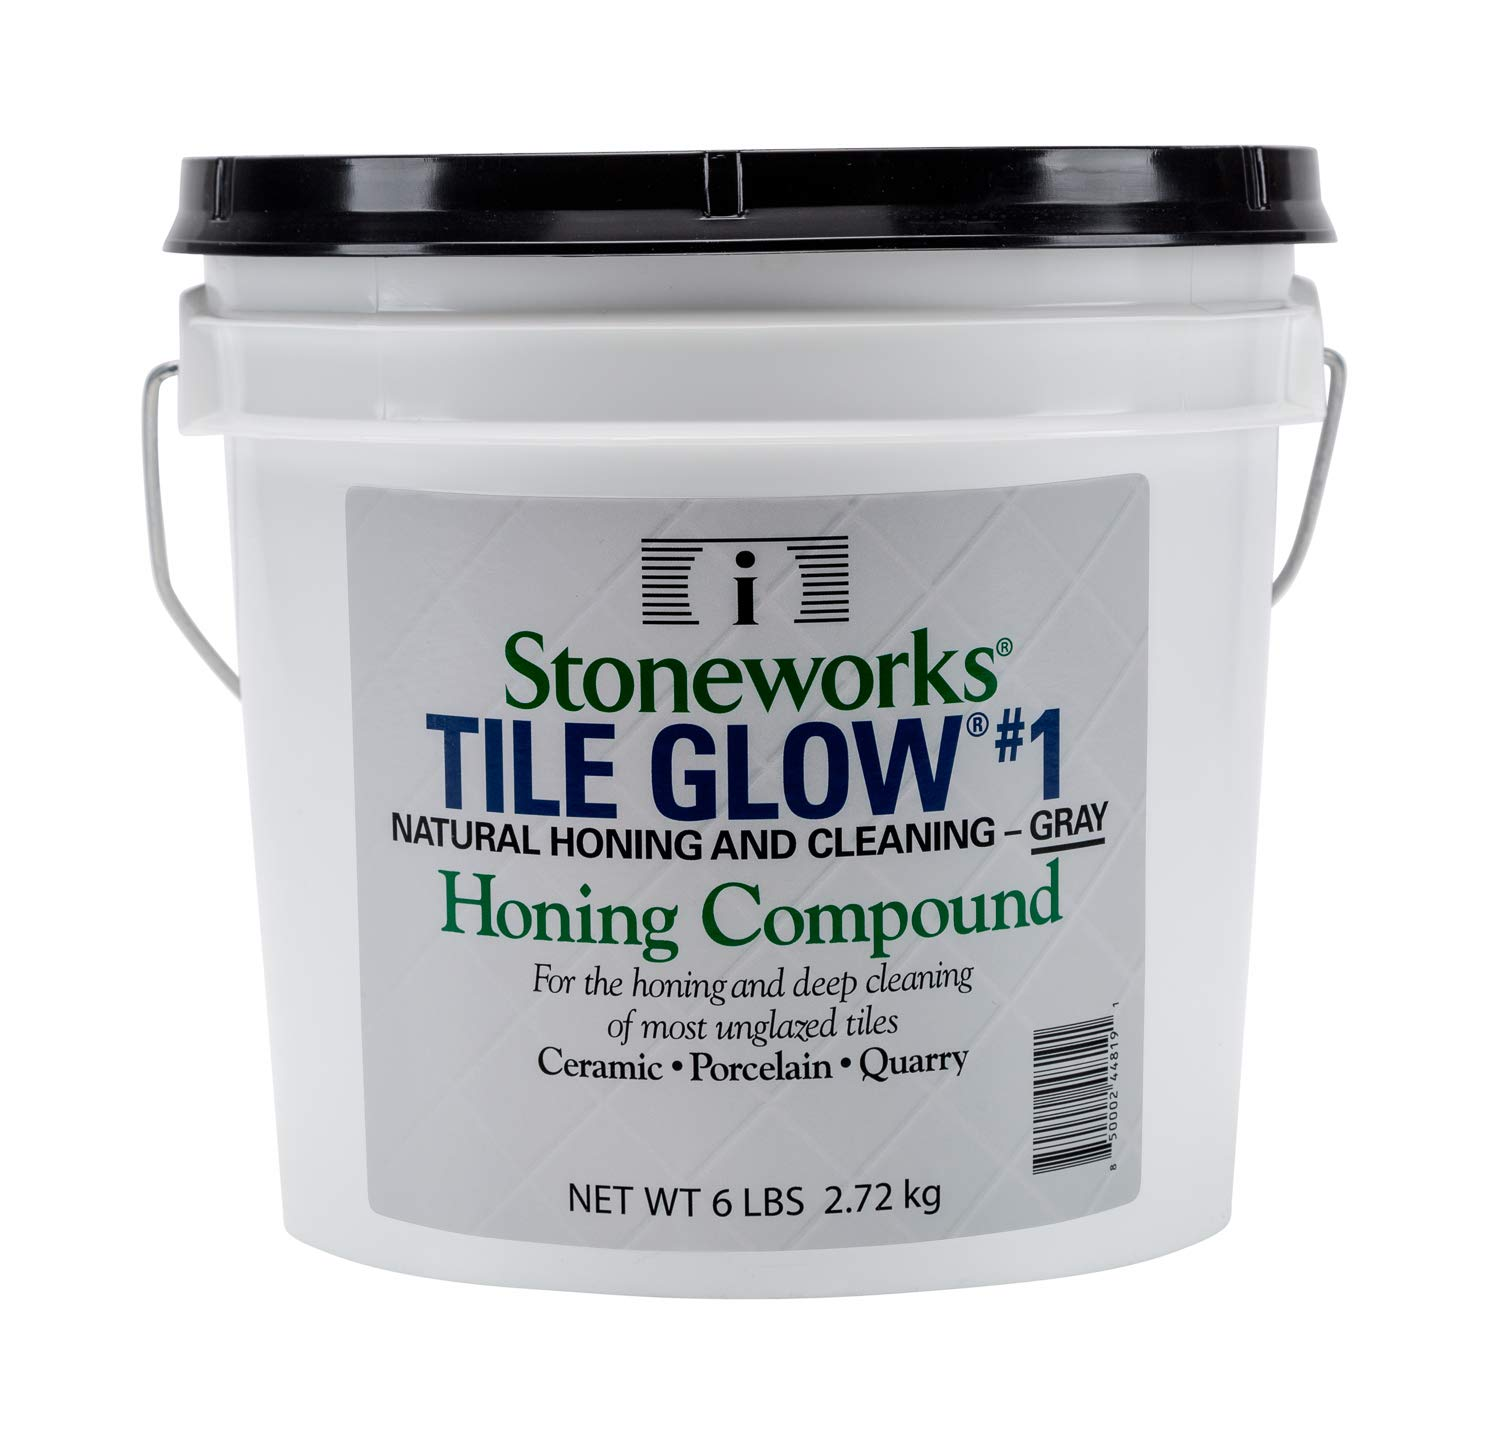 Tile Glow #1 Gray (6 Lb) Natural, Non-Wax Compound for The honing and deep Cleaning of Most unglazed Ceramic, Porcelain and Quarry Tiles